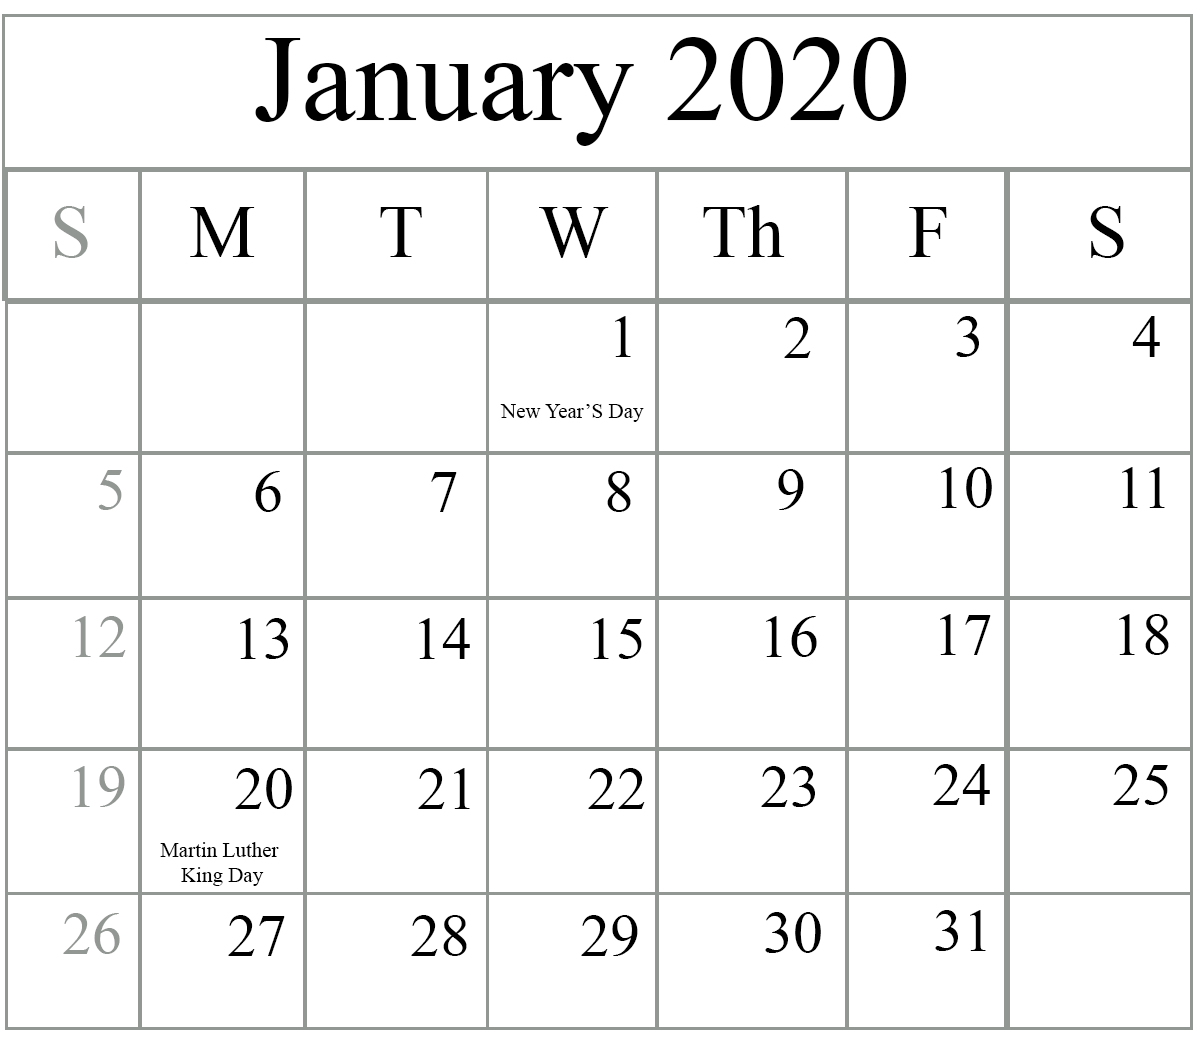 Free January 2020 Printable Calendar In Pdf, Excel & Word intended for Large Print 2020 Calendar To Print Free